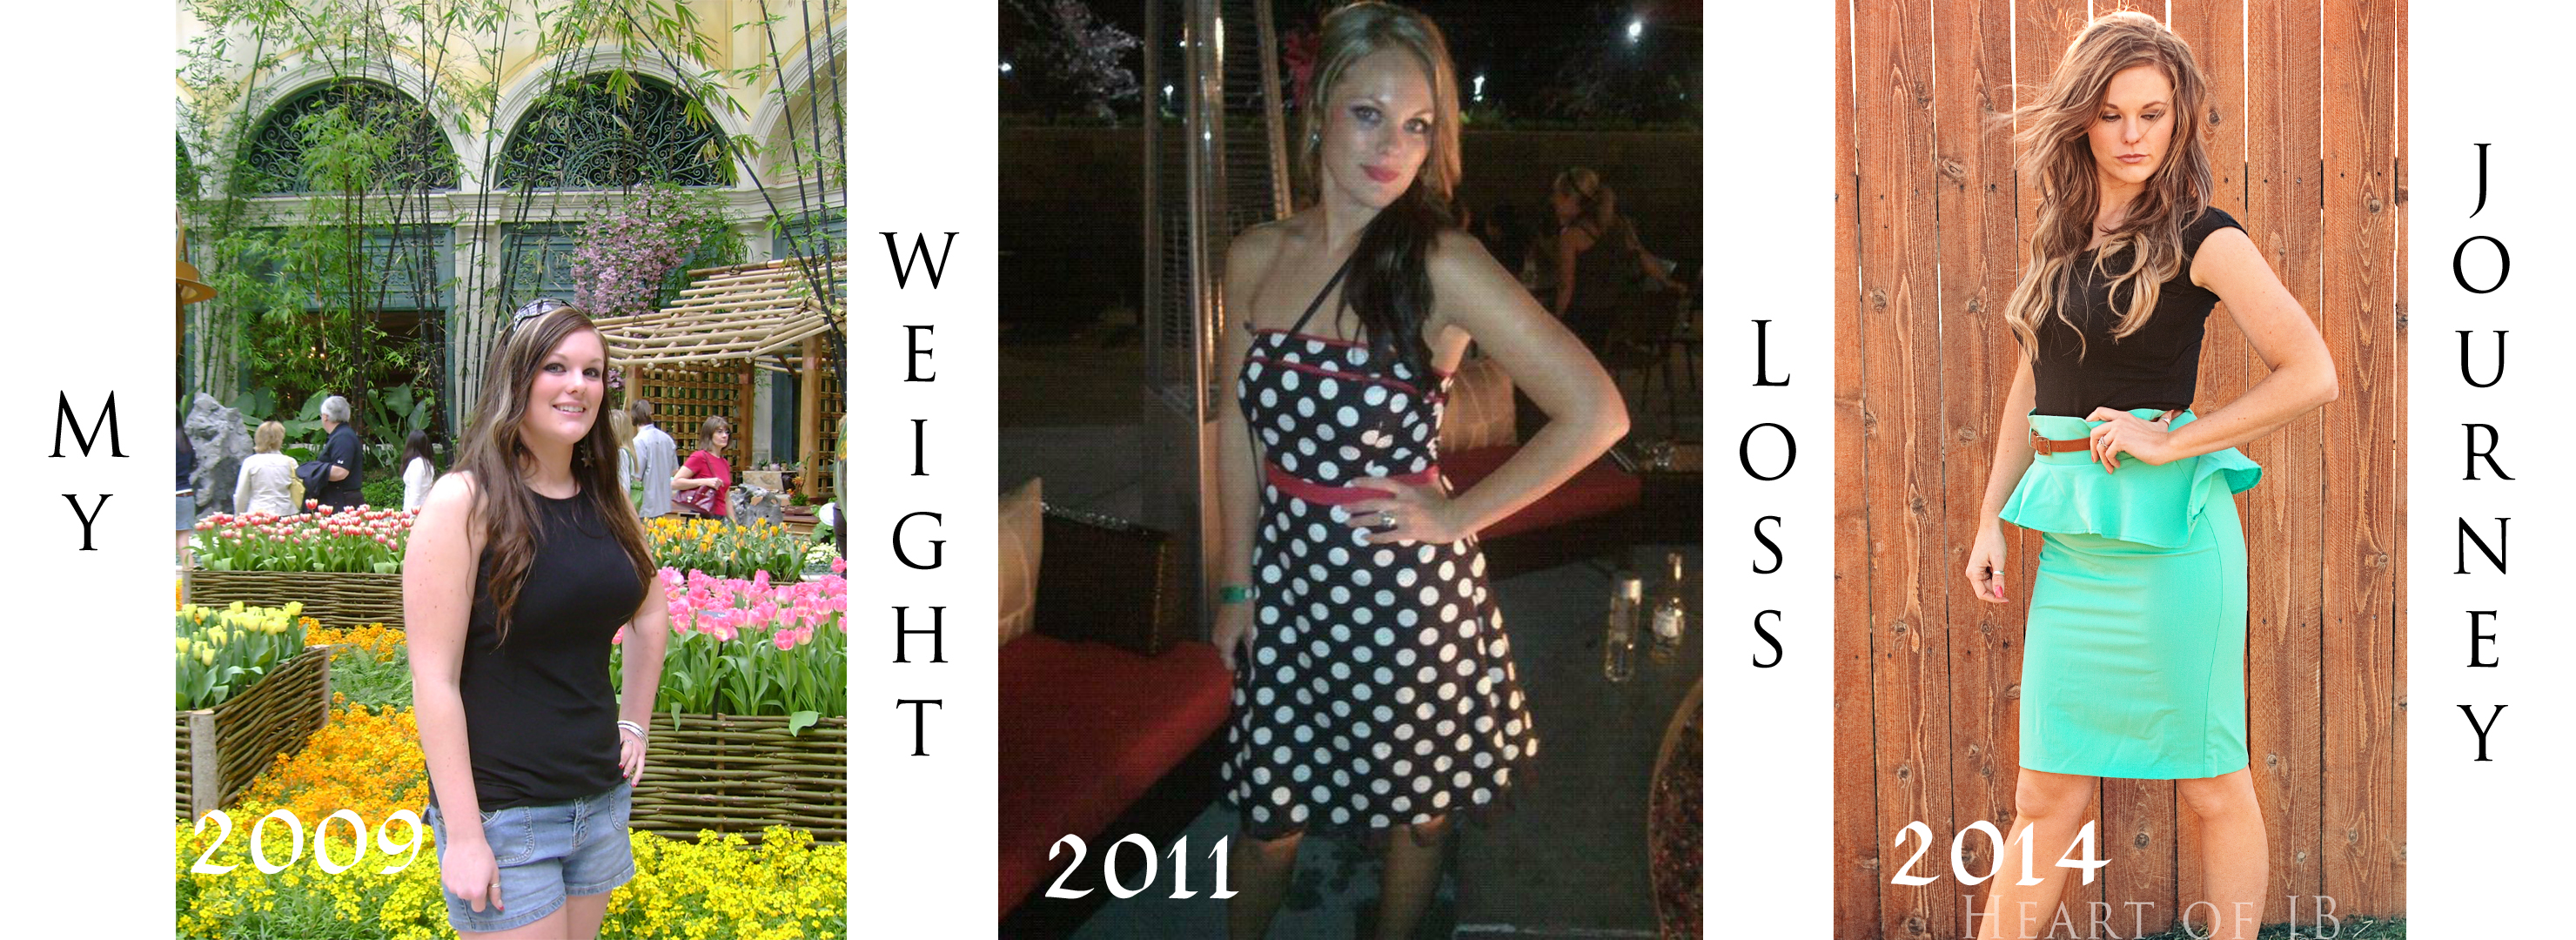 Lose weight p3 hcg ccuart Image collections